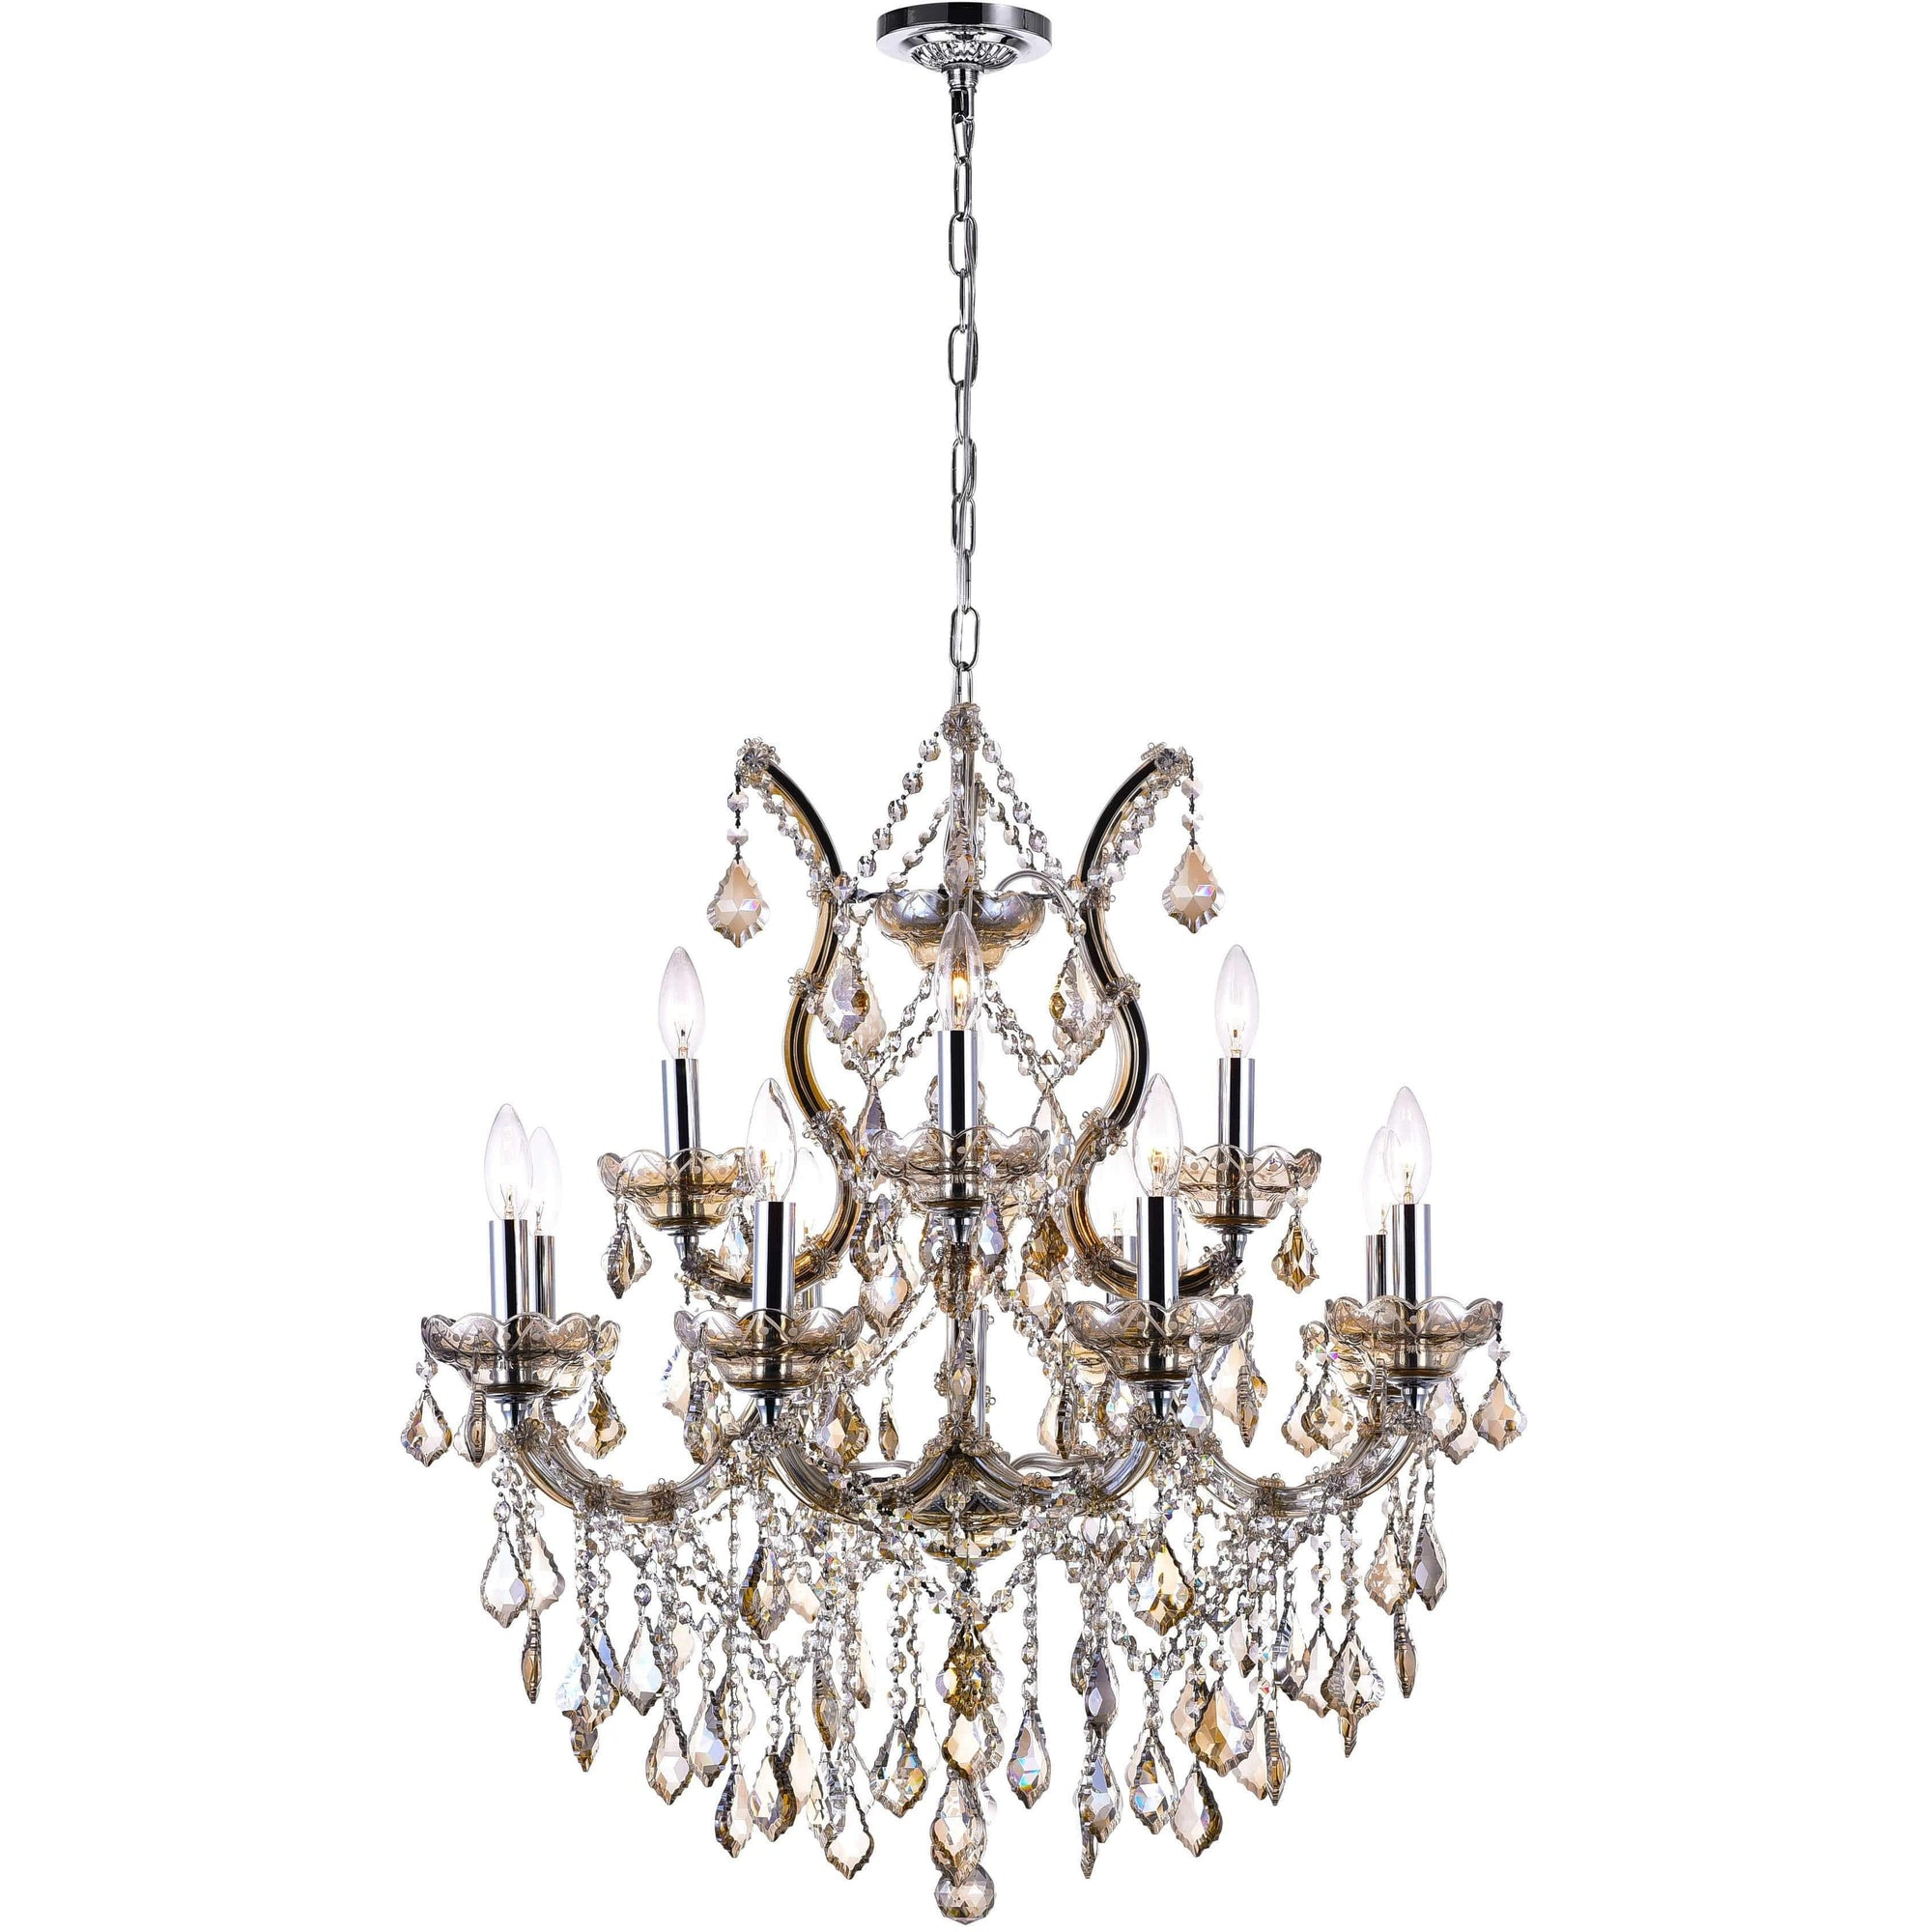 CWI Lighting Chandeliers Chrome / K9 Cognac Maria Theresa 13 Light Up Chandelier with Chrome finish by CWI Lighting 8311P30C-13 (Cognac)